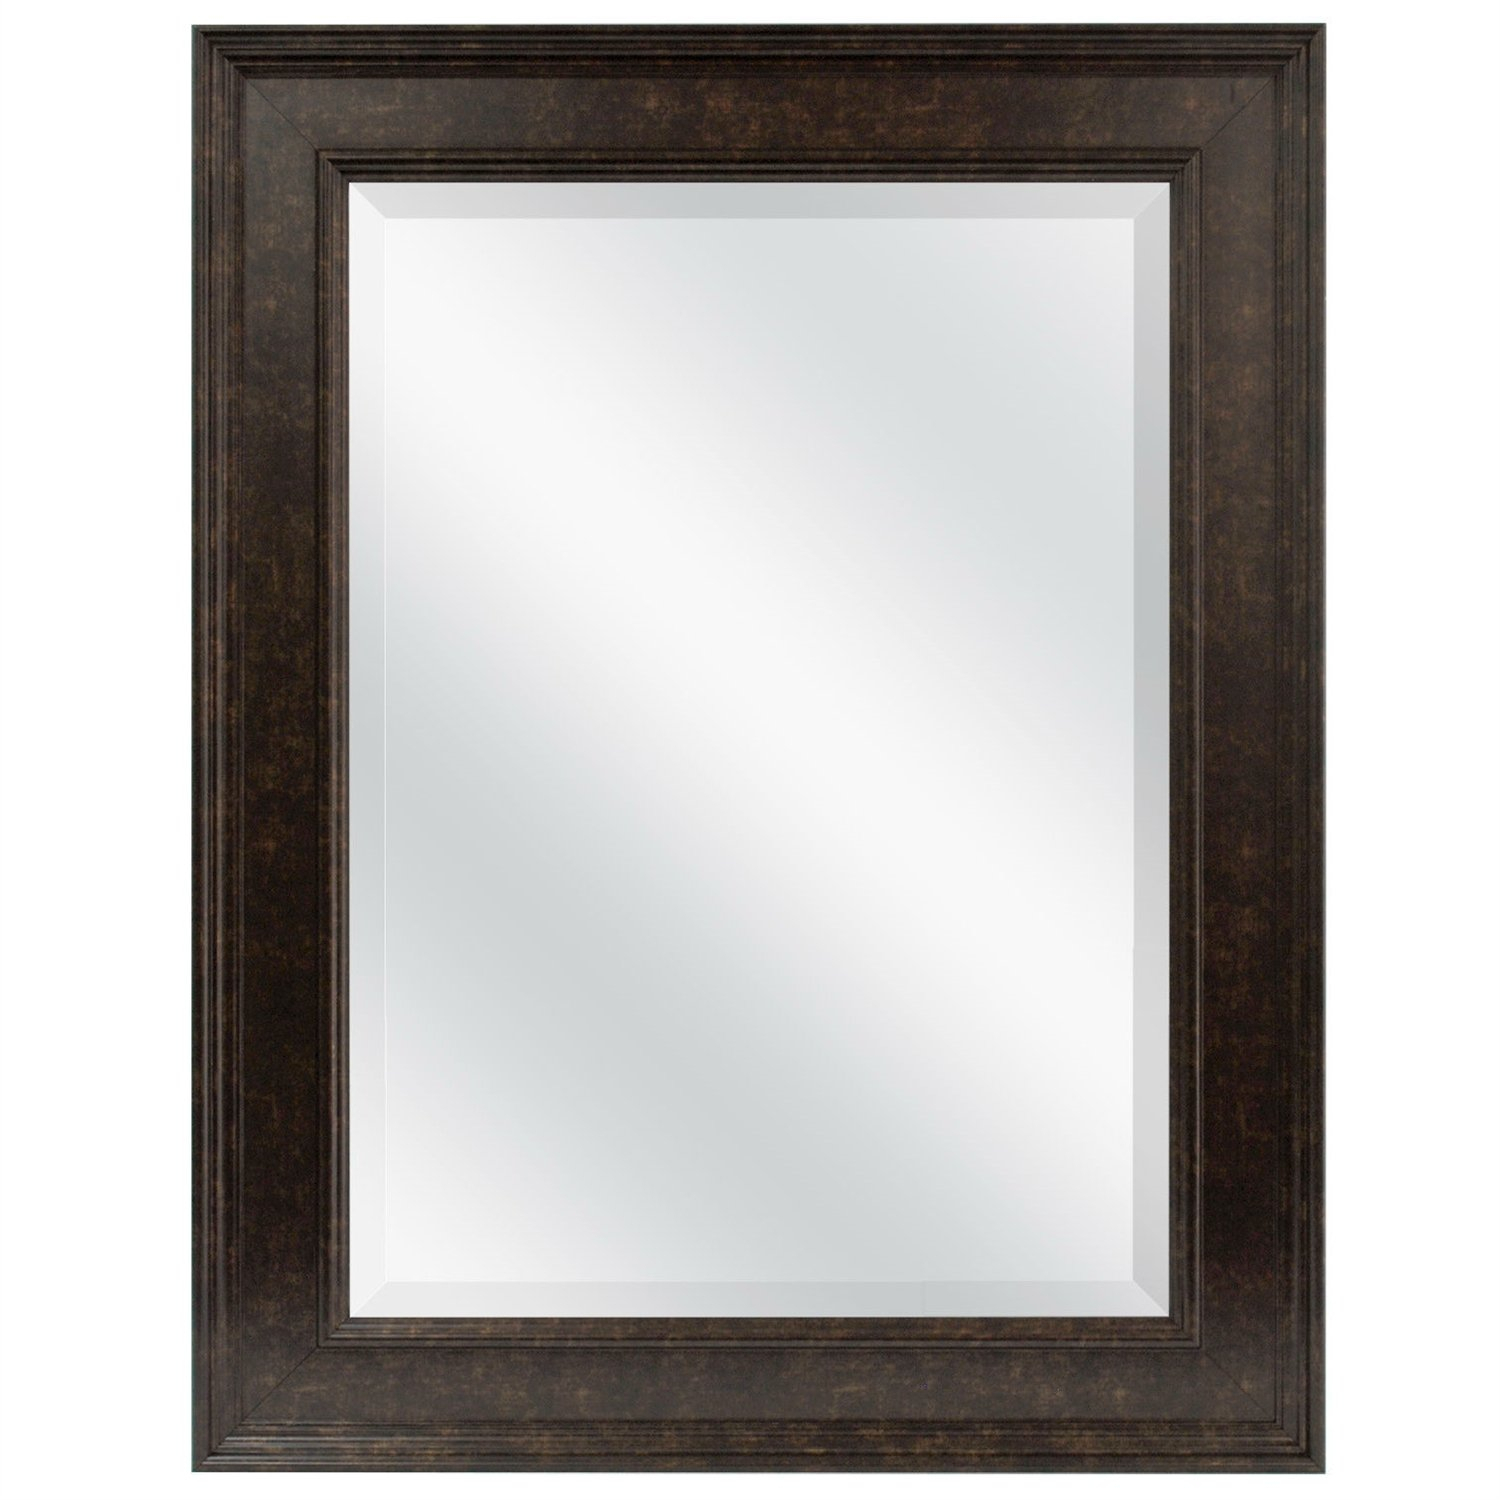 This Beveled Rectangular Bathroom Vanity Mirror With Bronze Pertaining To Kristy Rectangular Beveled Vanity Mirrors In Distressed (Image 19 of 20)